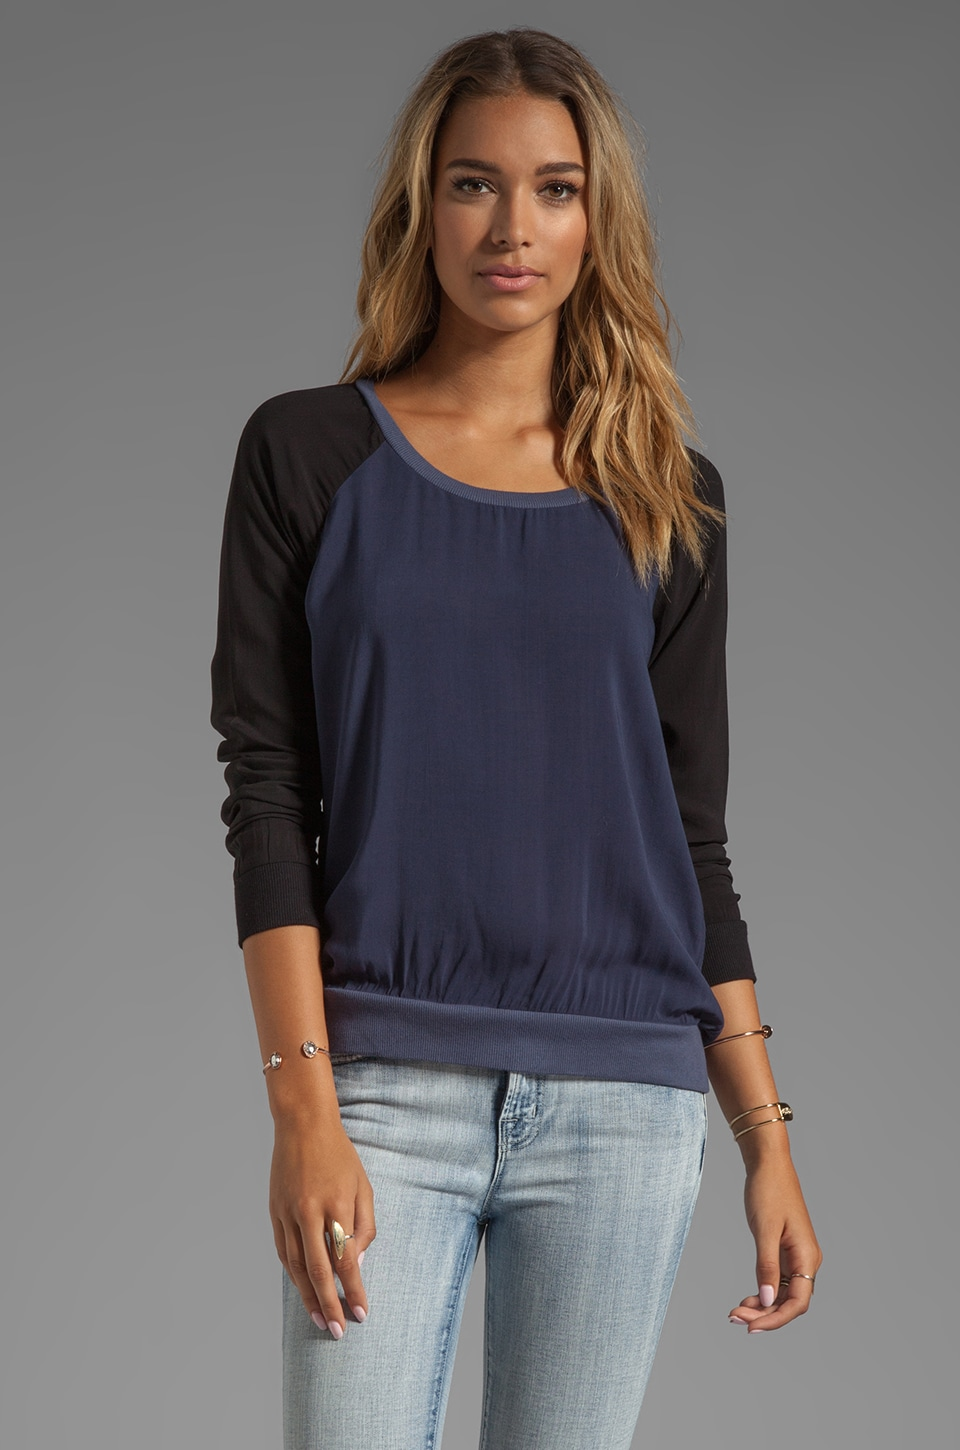 Splendid Sporty Blocked Shirting Long Sleeve in Navy